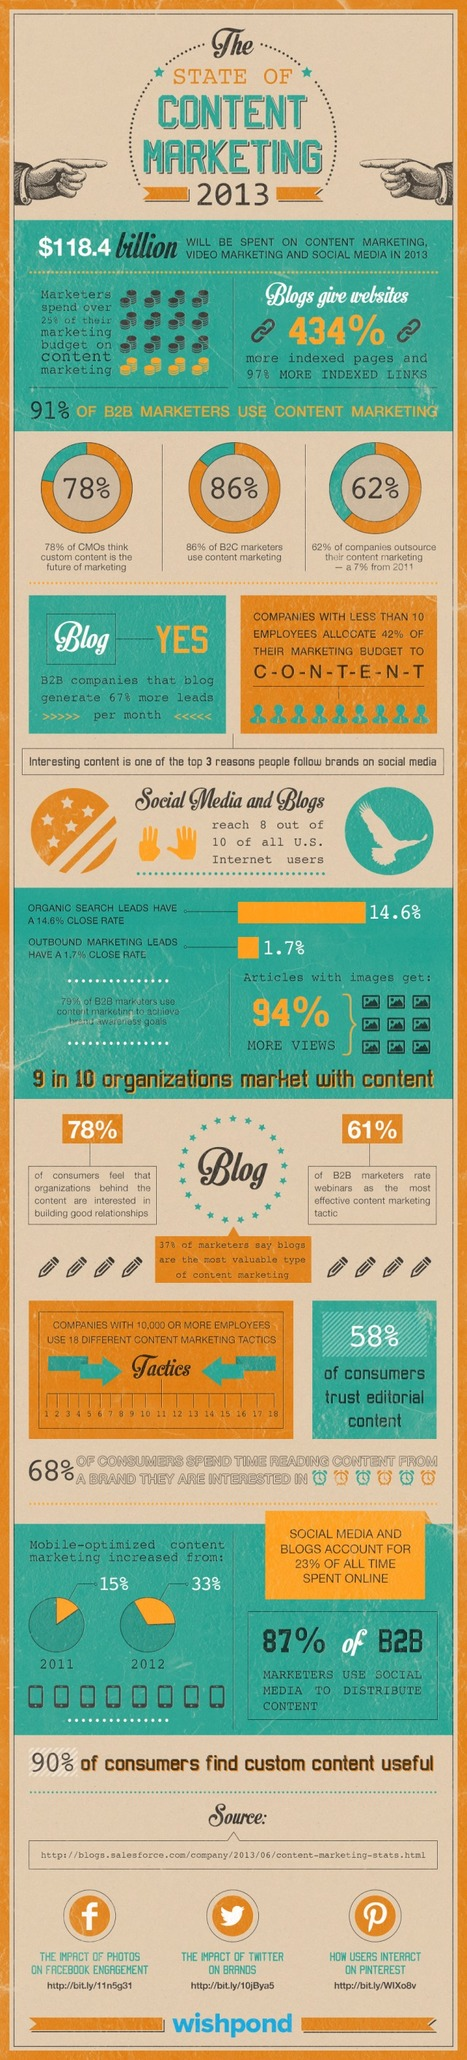 Infographic: The State of Content Marketing 2013 - Marketing Technology Blog | MarketingHits | Scoop.it